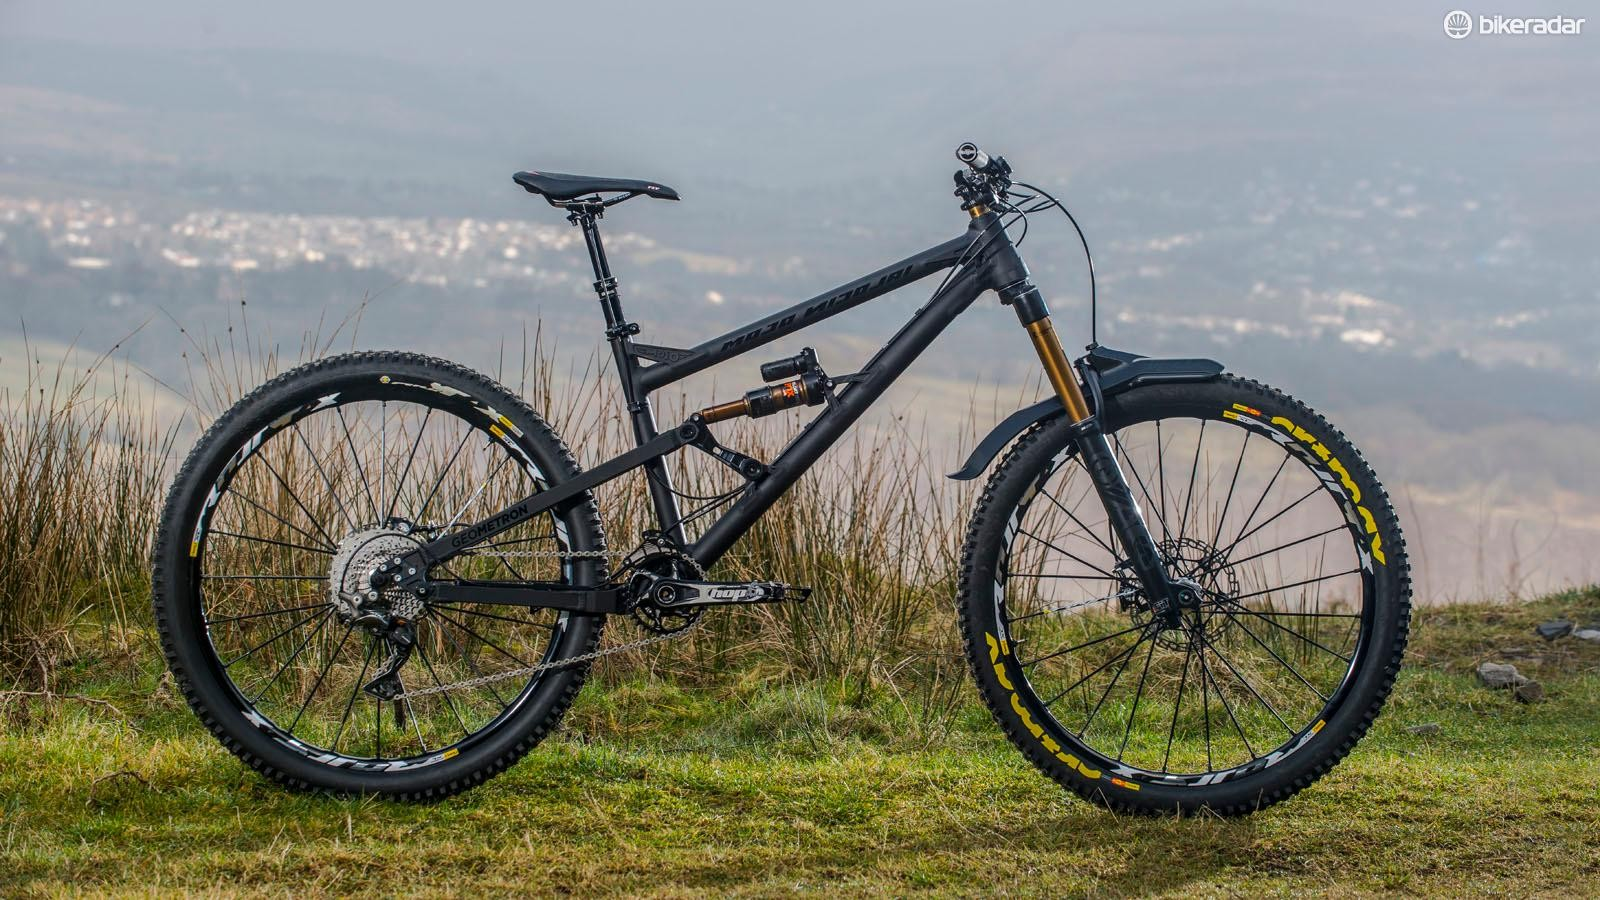 Mojo/Nicolai's radical GeoMetron machines are now available for test ride and purchase